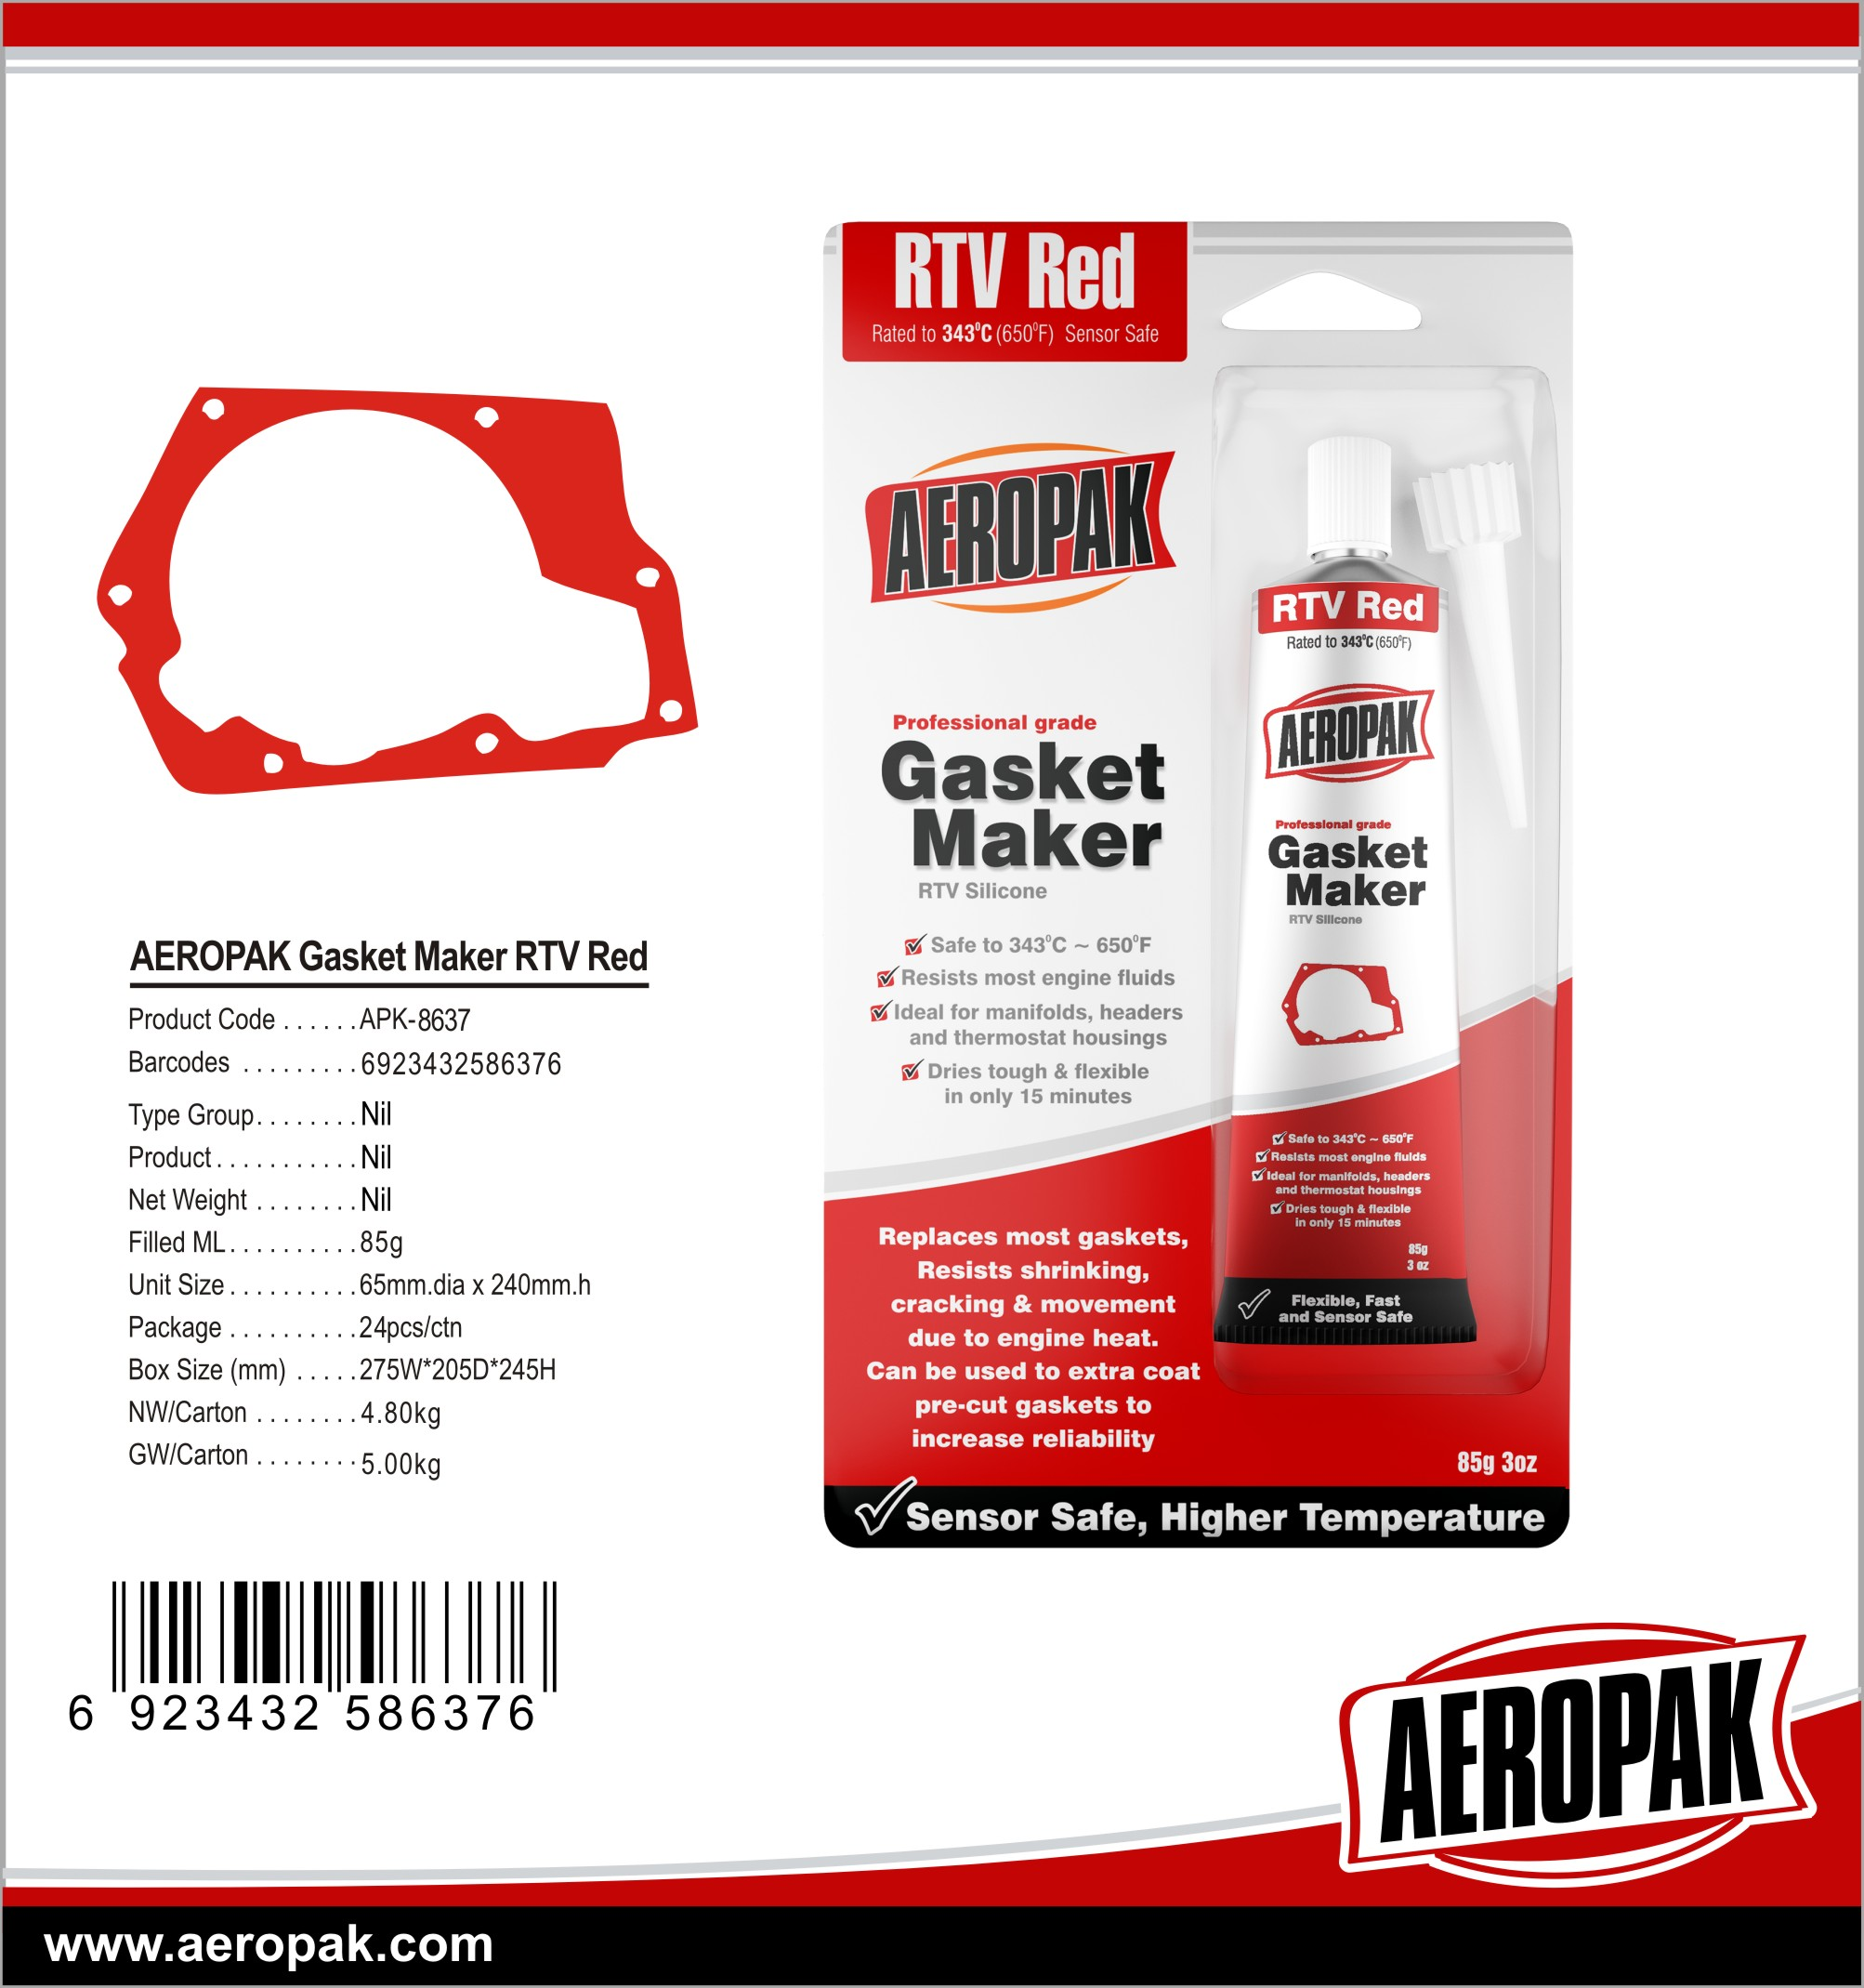 AEROPAK 85g Hi-Temp RTV Gasket Maker Silicone Sealant with Red